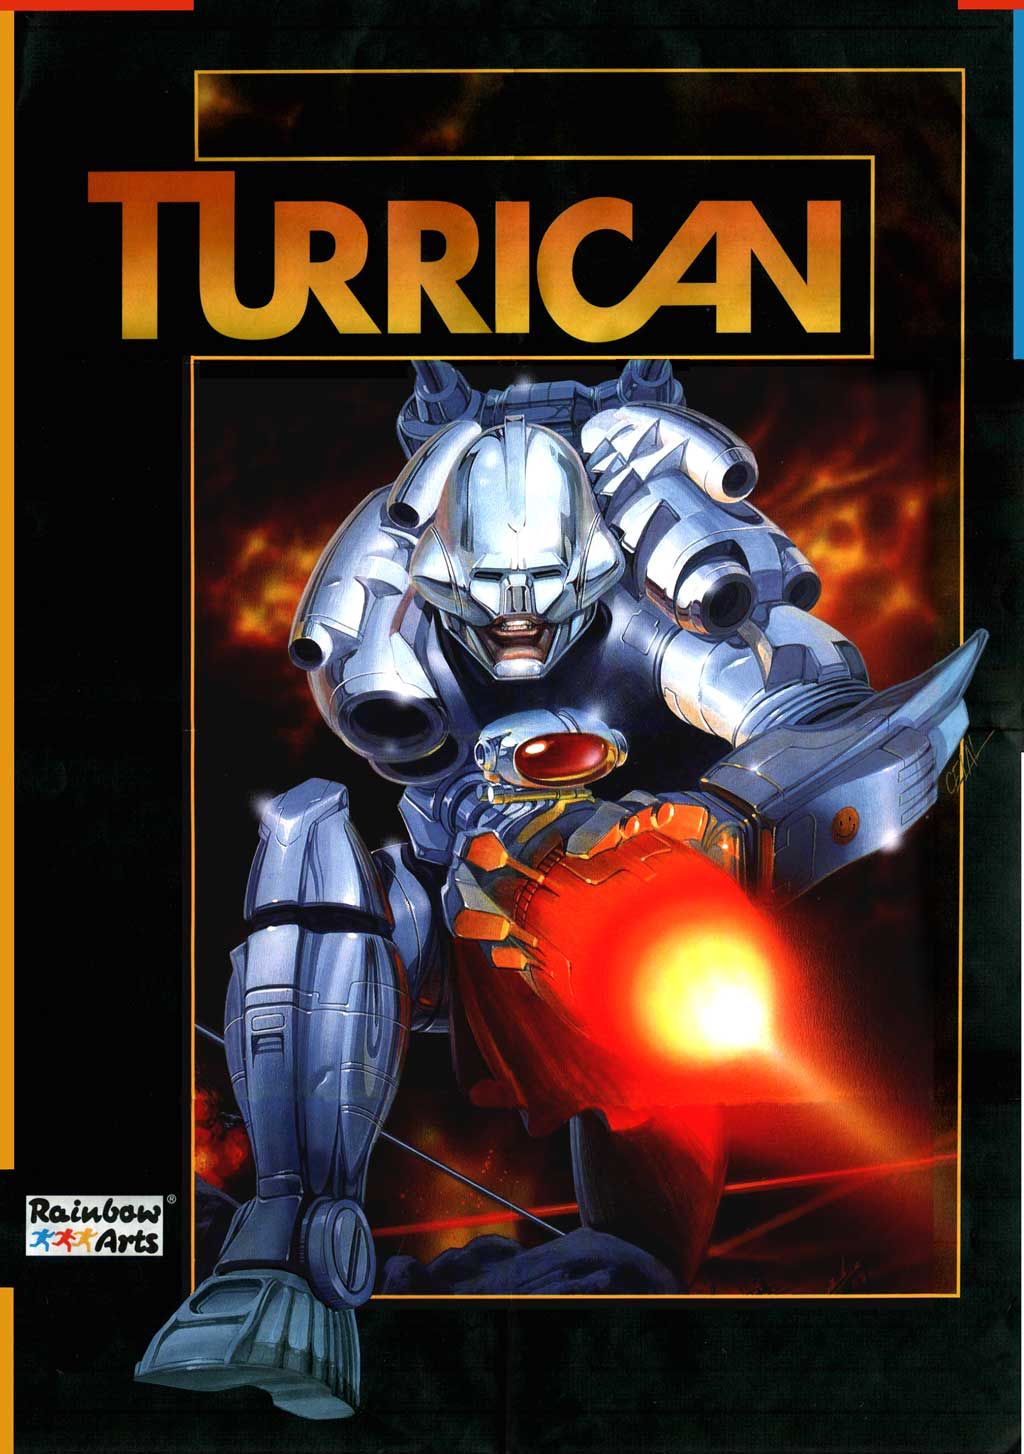 Turrican special 30th birthday edition will be revealed at gamescom Opening Night Live thumbnail